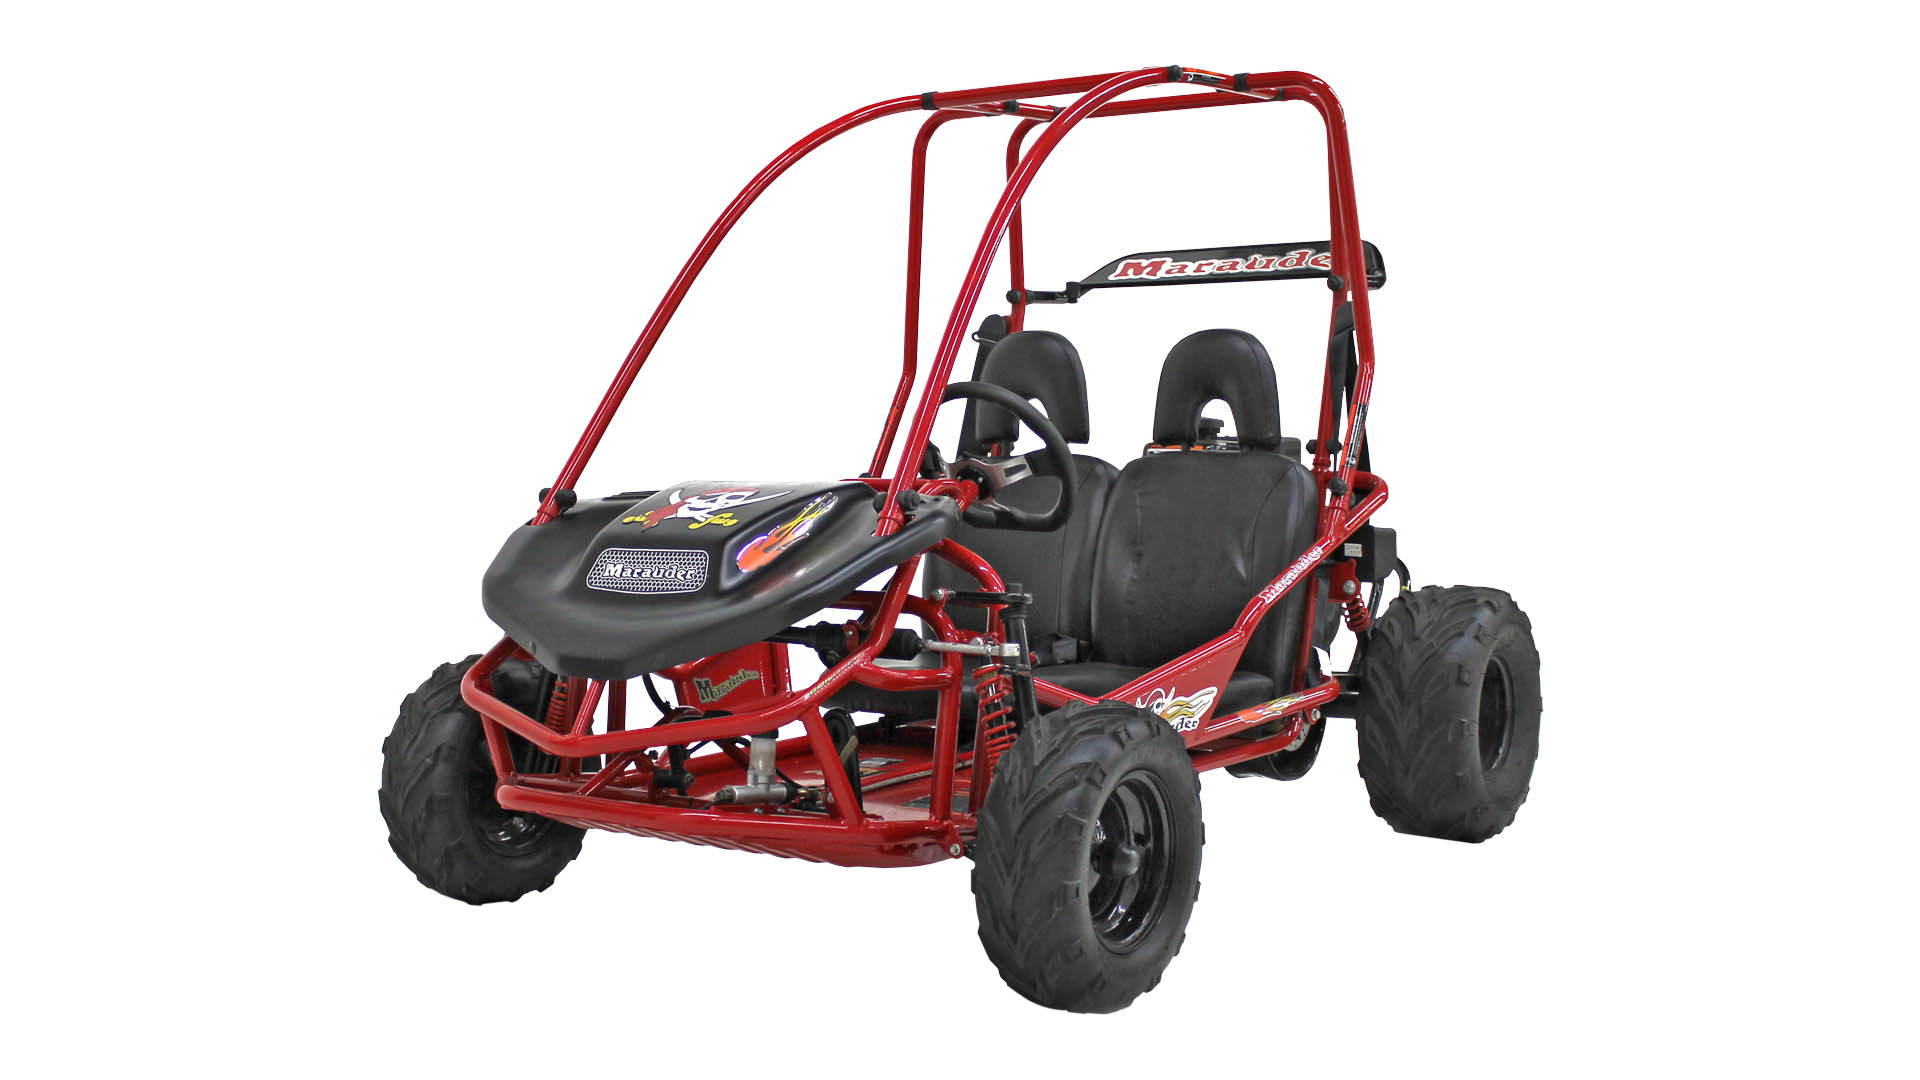 American Landmaster Marauder Off Road Go Kart for Kids |